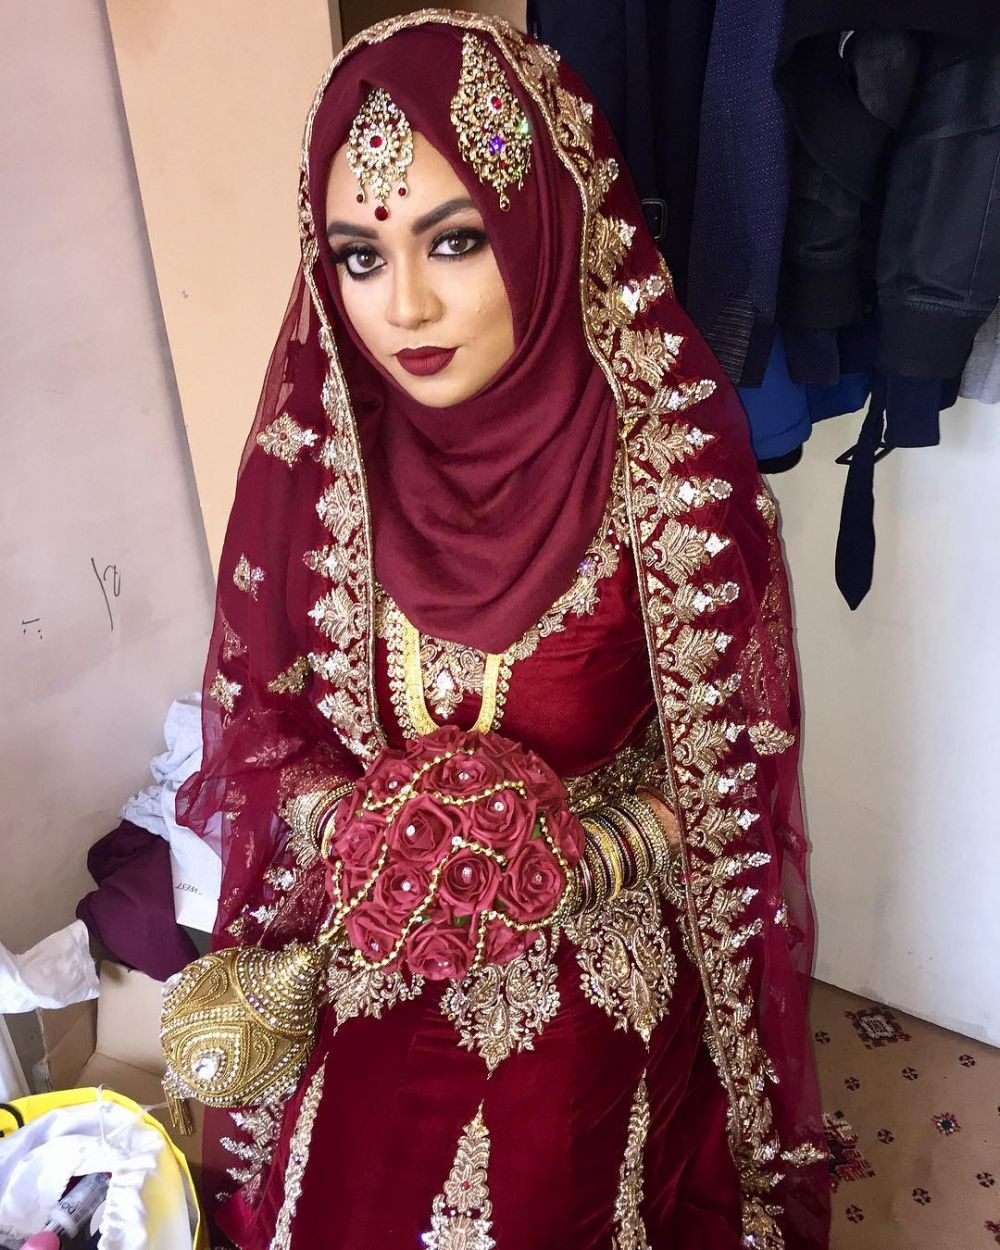 Marina Maitland - Wedding Dress: Hijab Indian Wedding Dress